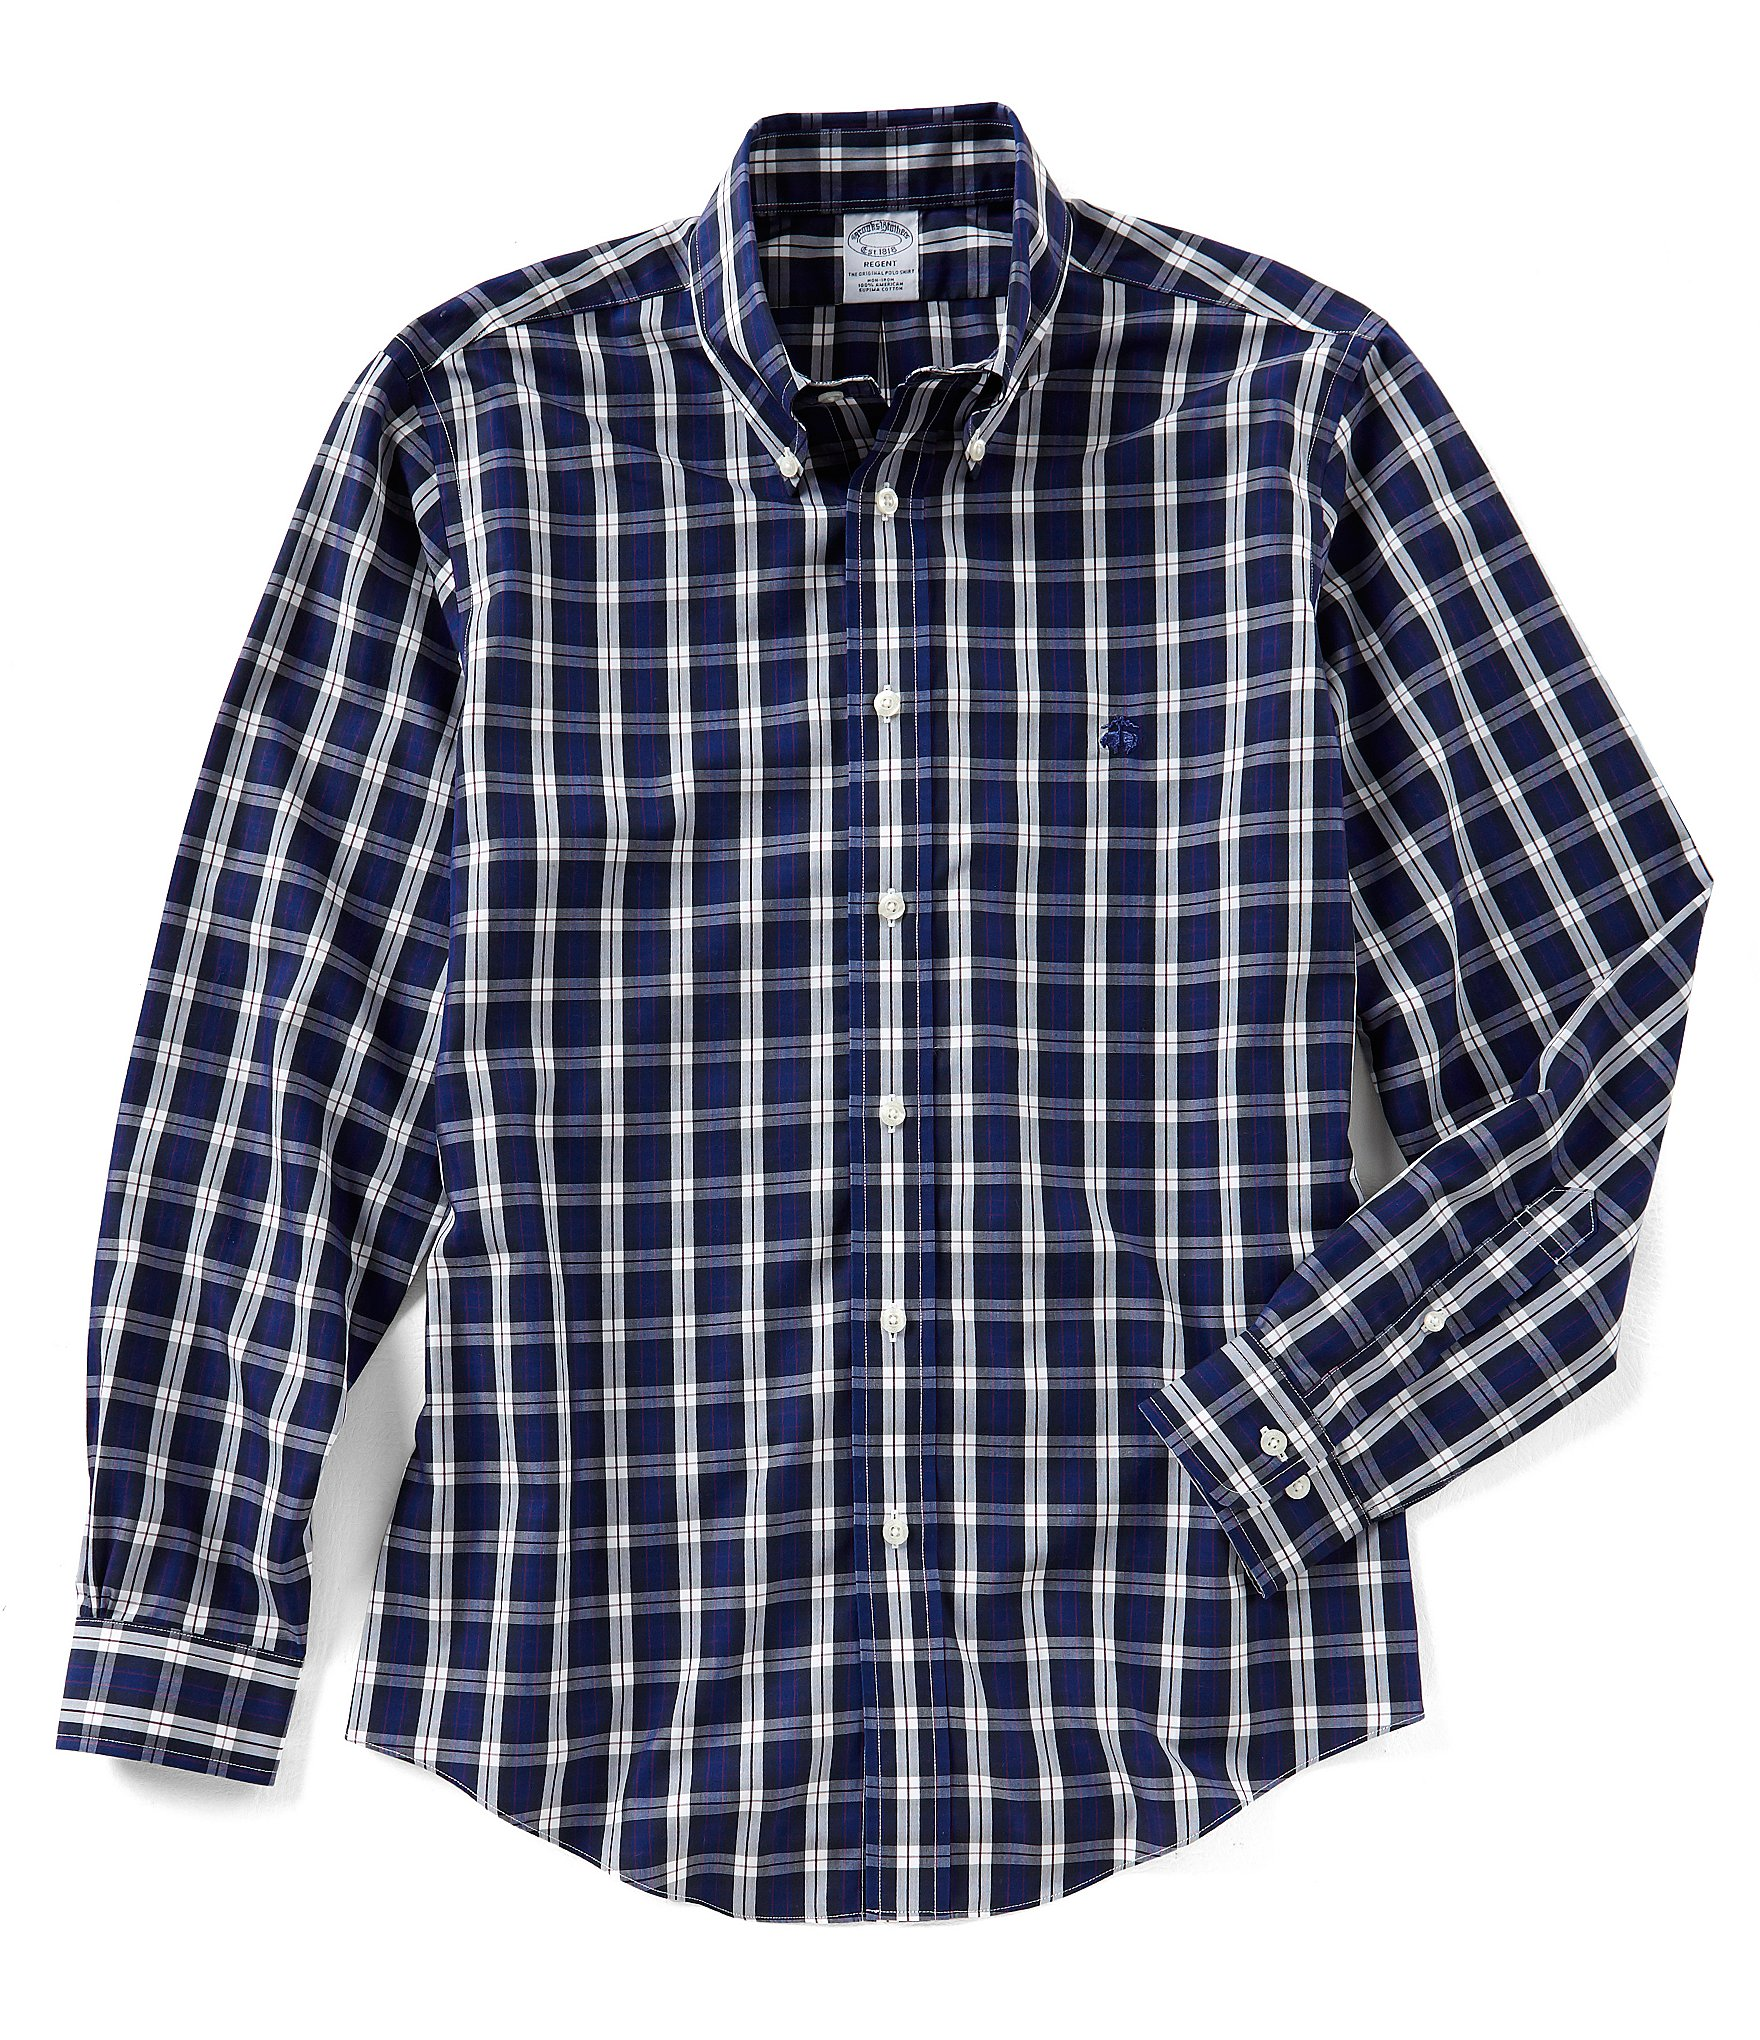 Brooks brothers non iron regent fit plaid long sleeve for Brooks brothers non iron shirt review